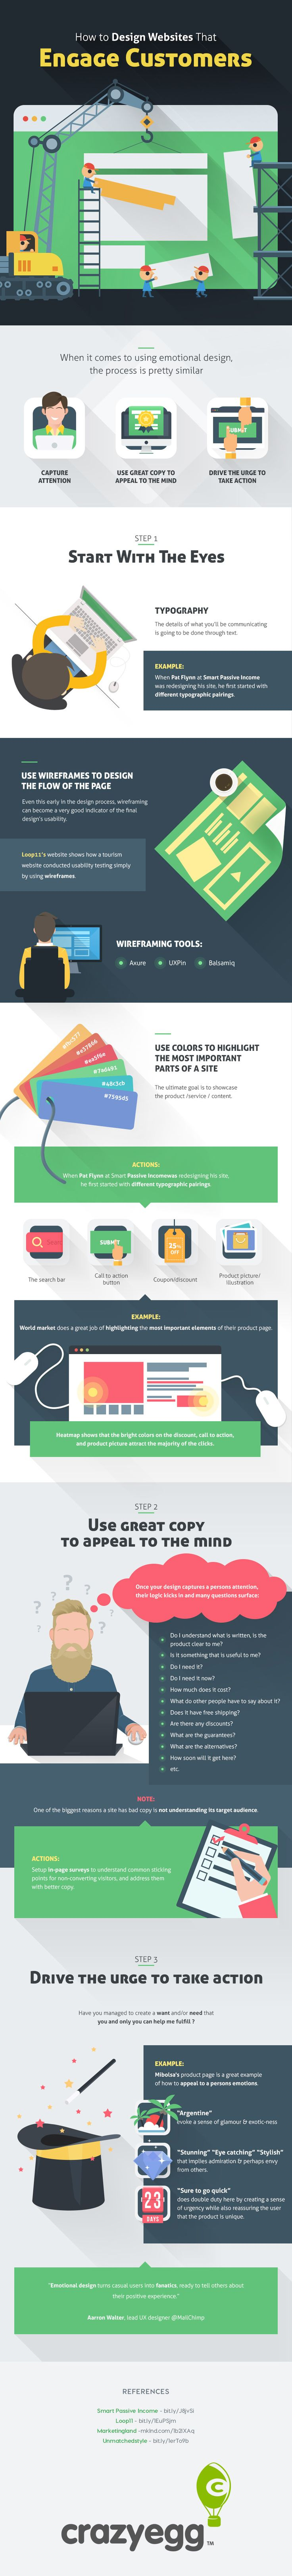 Infographic: How to Design Websites That Engage Customers